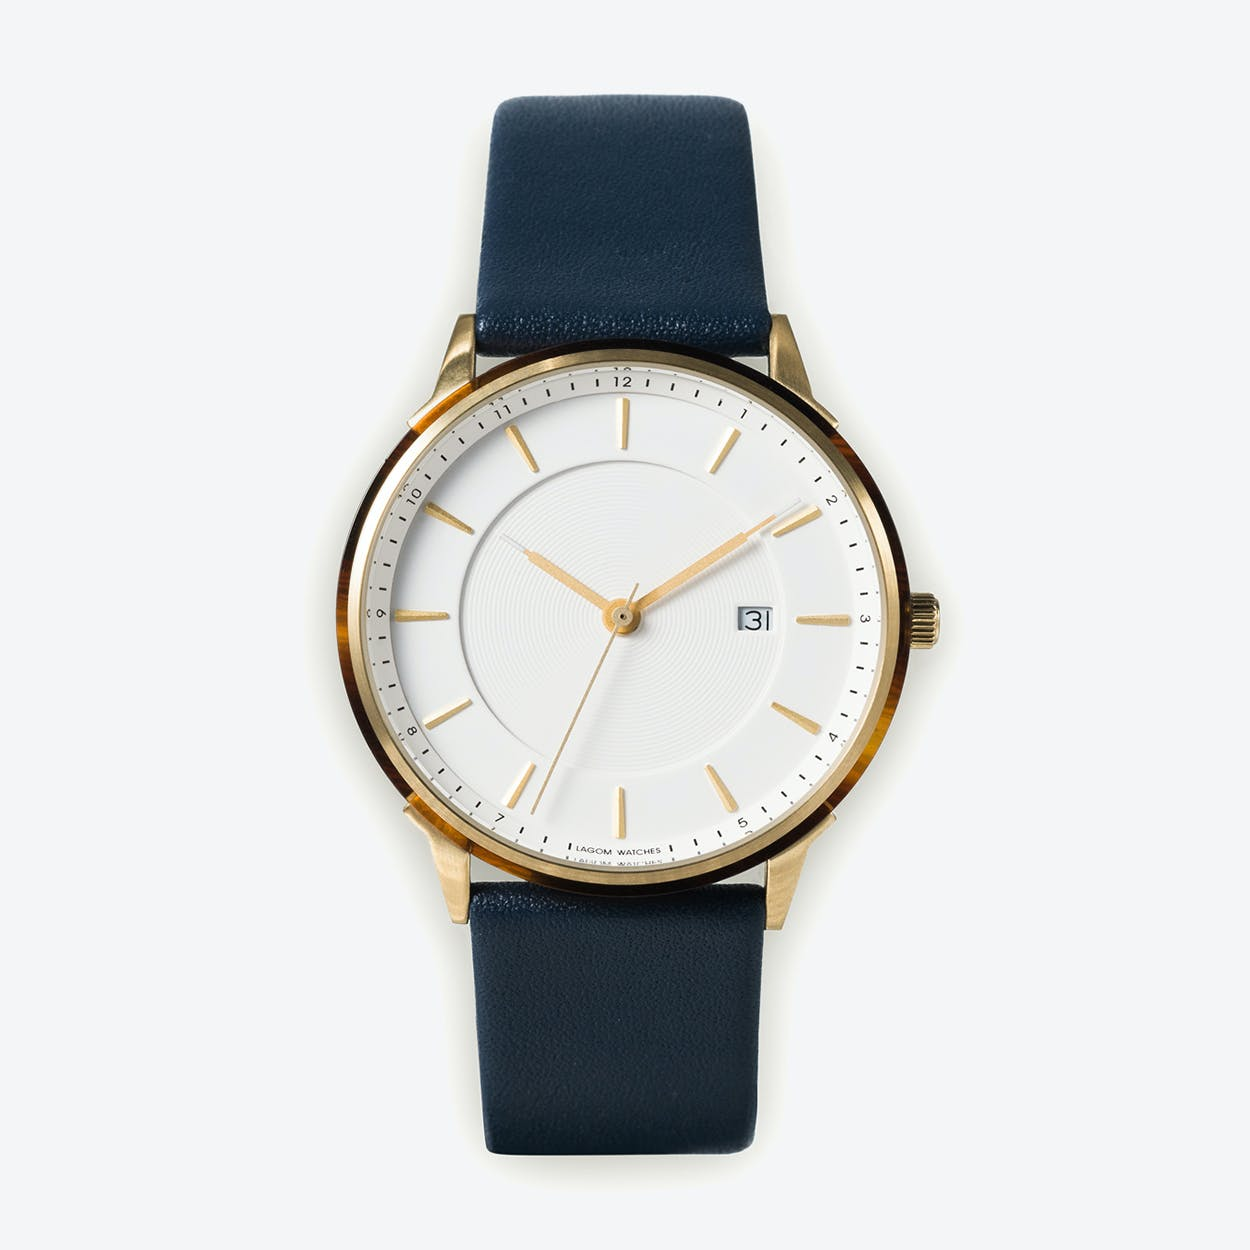 BÖRJA - Gold Watch in Offwhite Face and Navy Blue Leather Strap